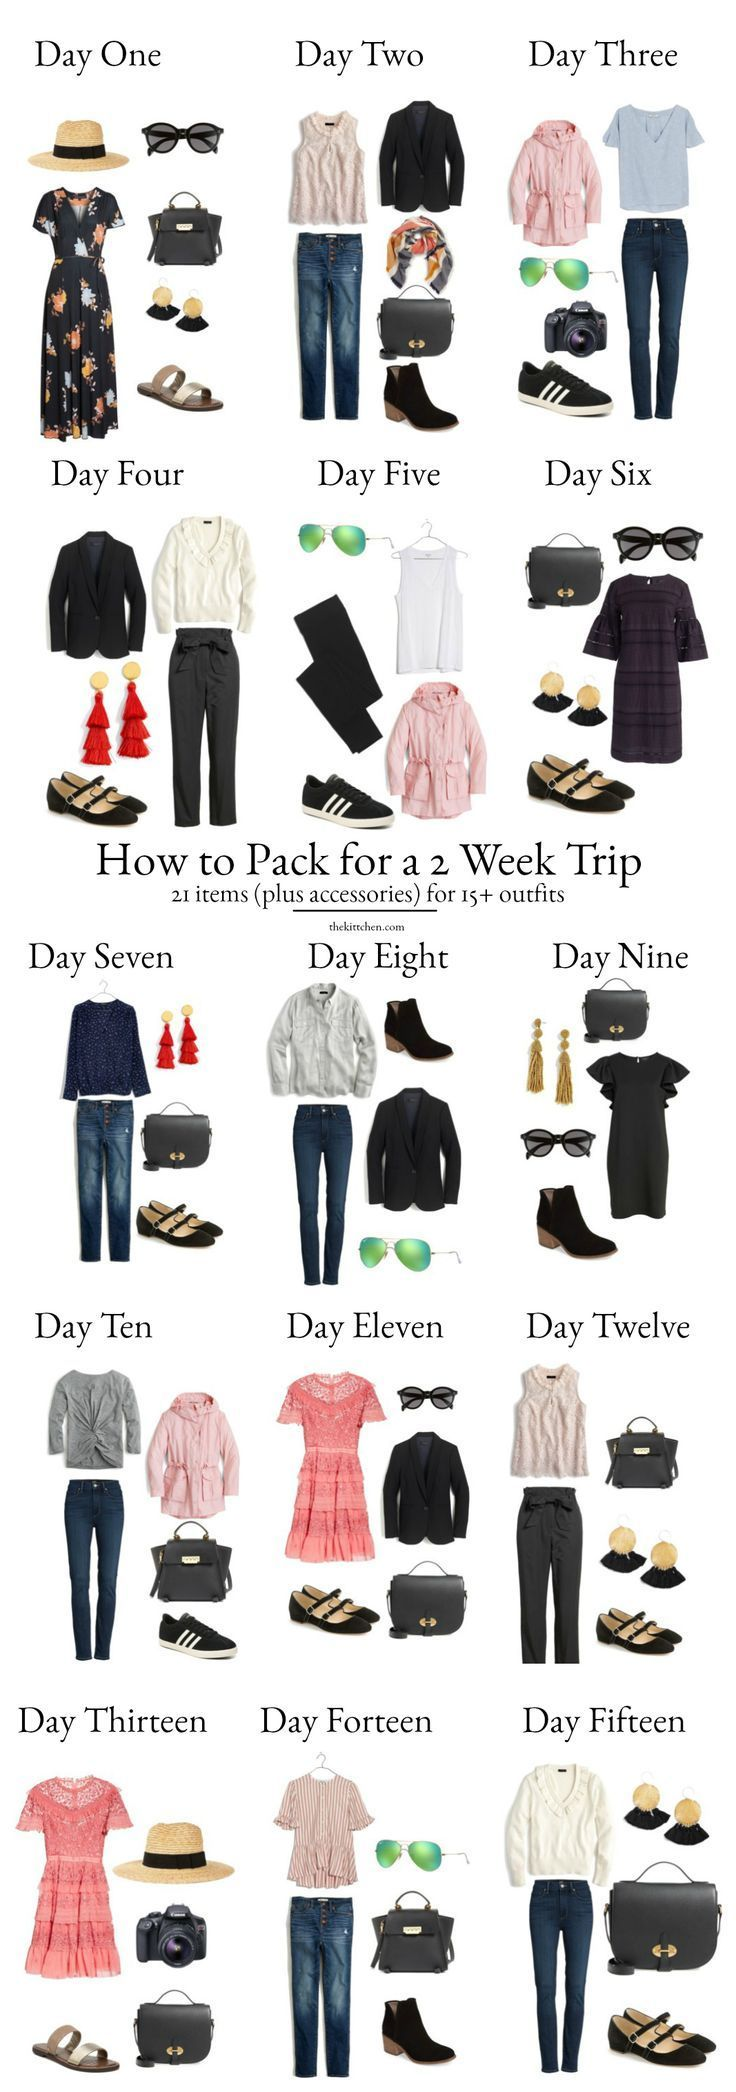 A Complete Europe Packing List - What You Need for 2 Weeks in Europe | europe